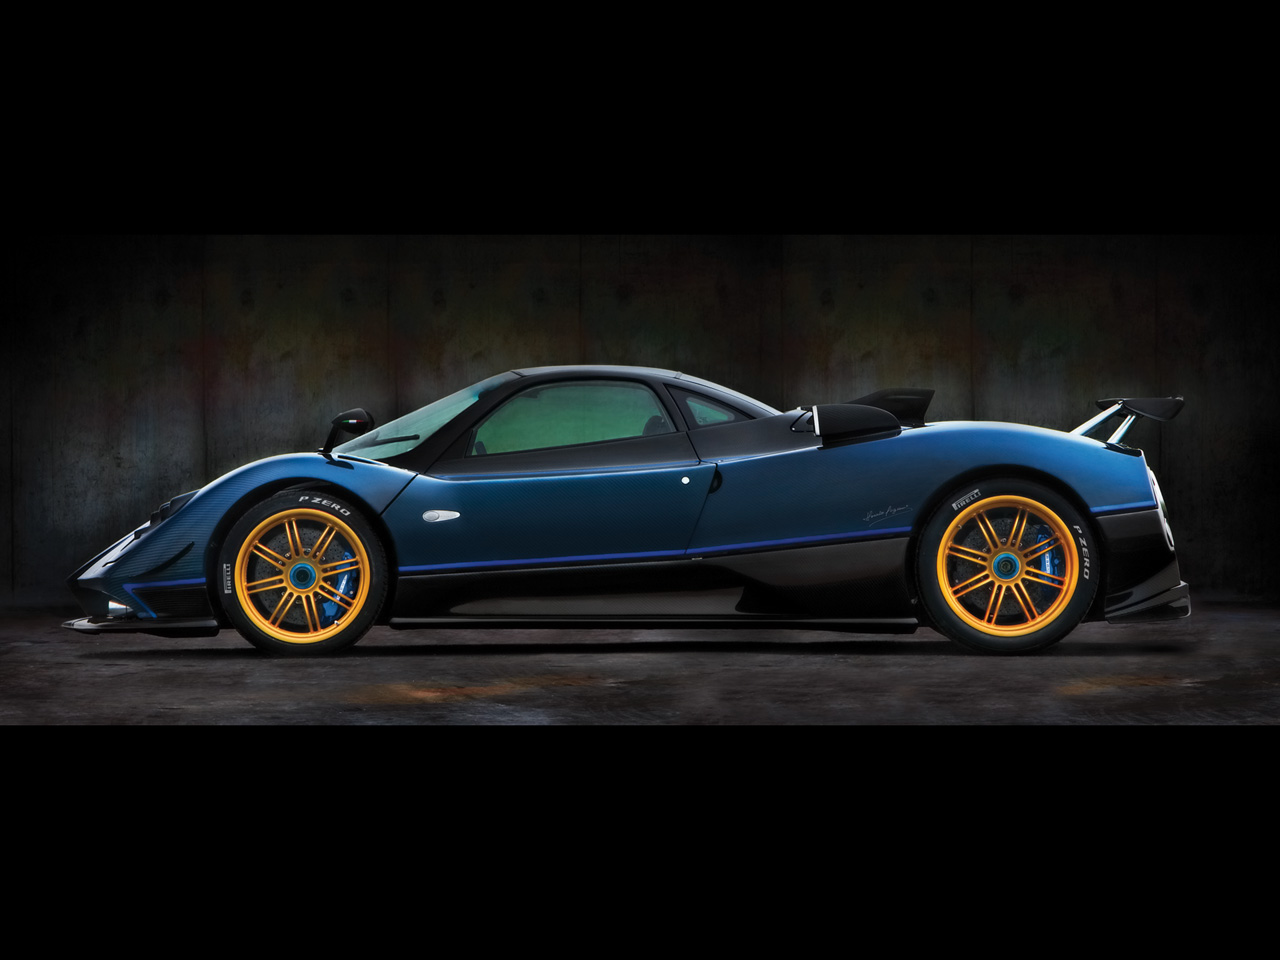 2010 Pagani Zonda Car Wallpapers-1080p